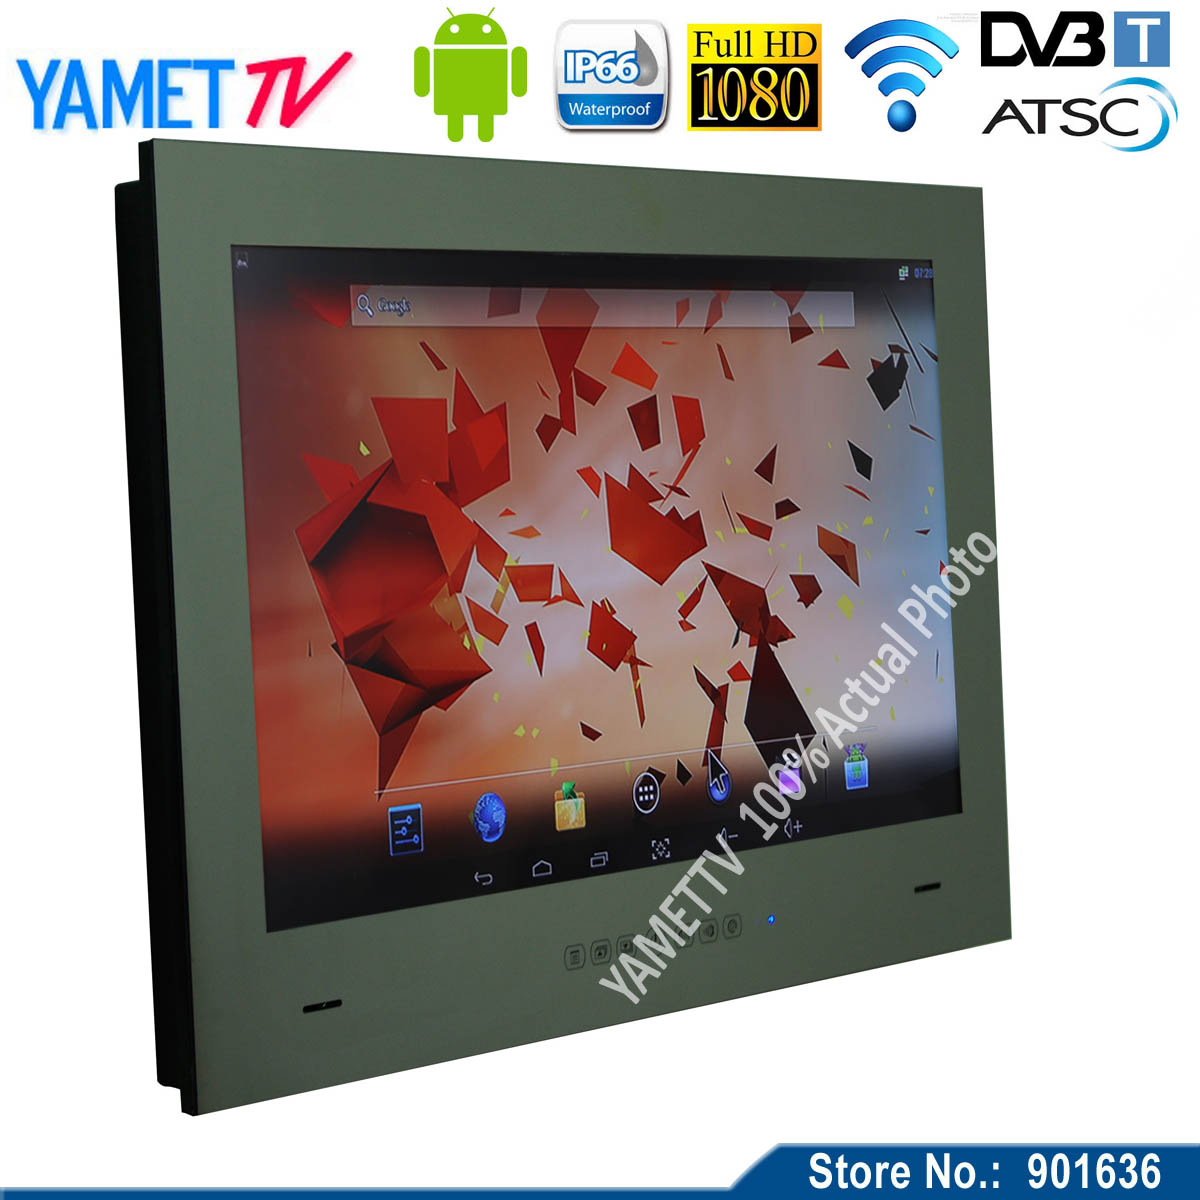 32 inch Yamet Mirror Android smart TV Mirror Television Hotel TV WIFI full-HD 1080P HDMI(China (Mainland))